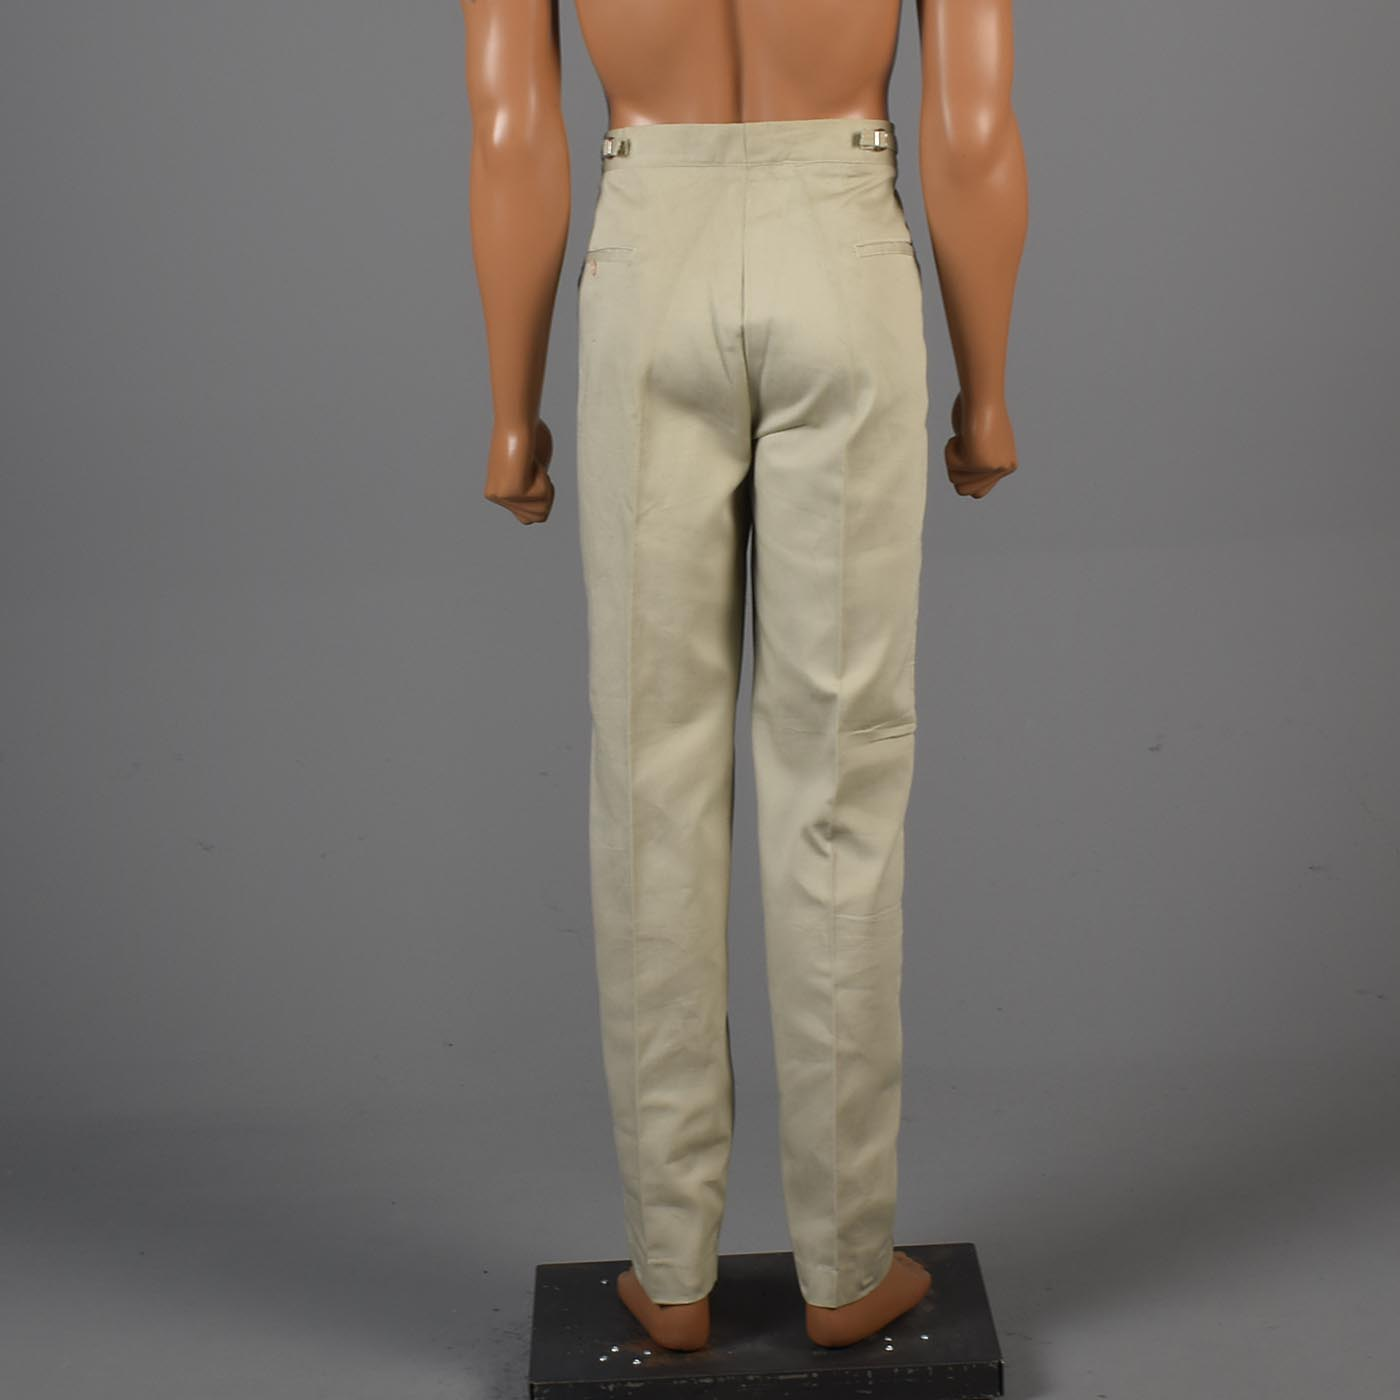 1960s Mens Deadstock Workwear Pants